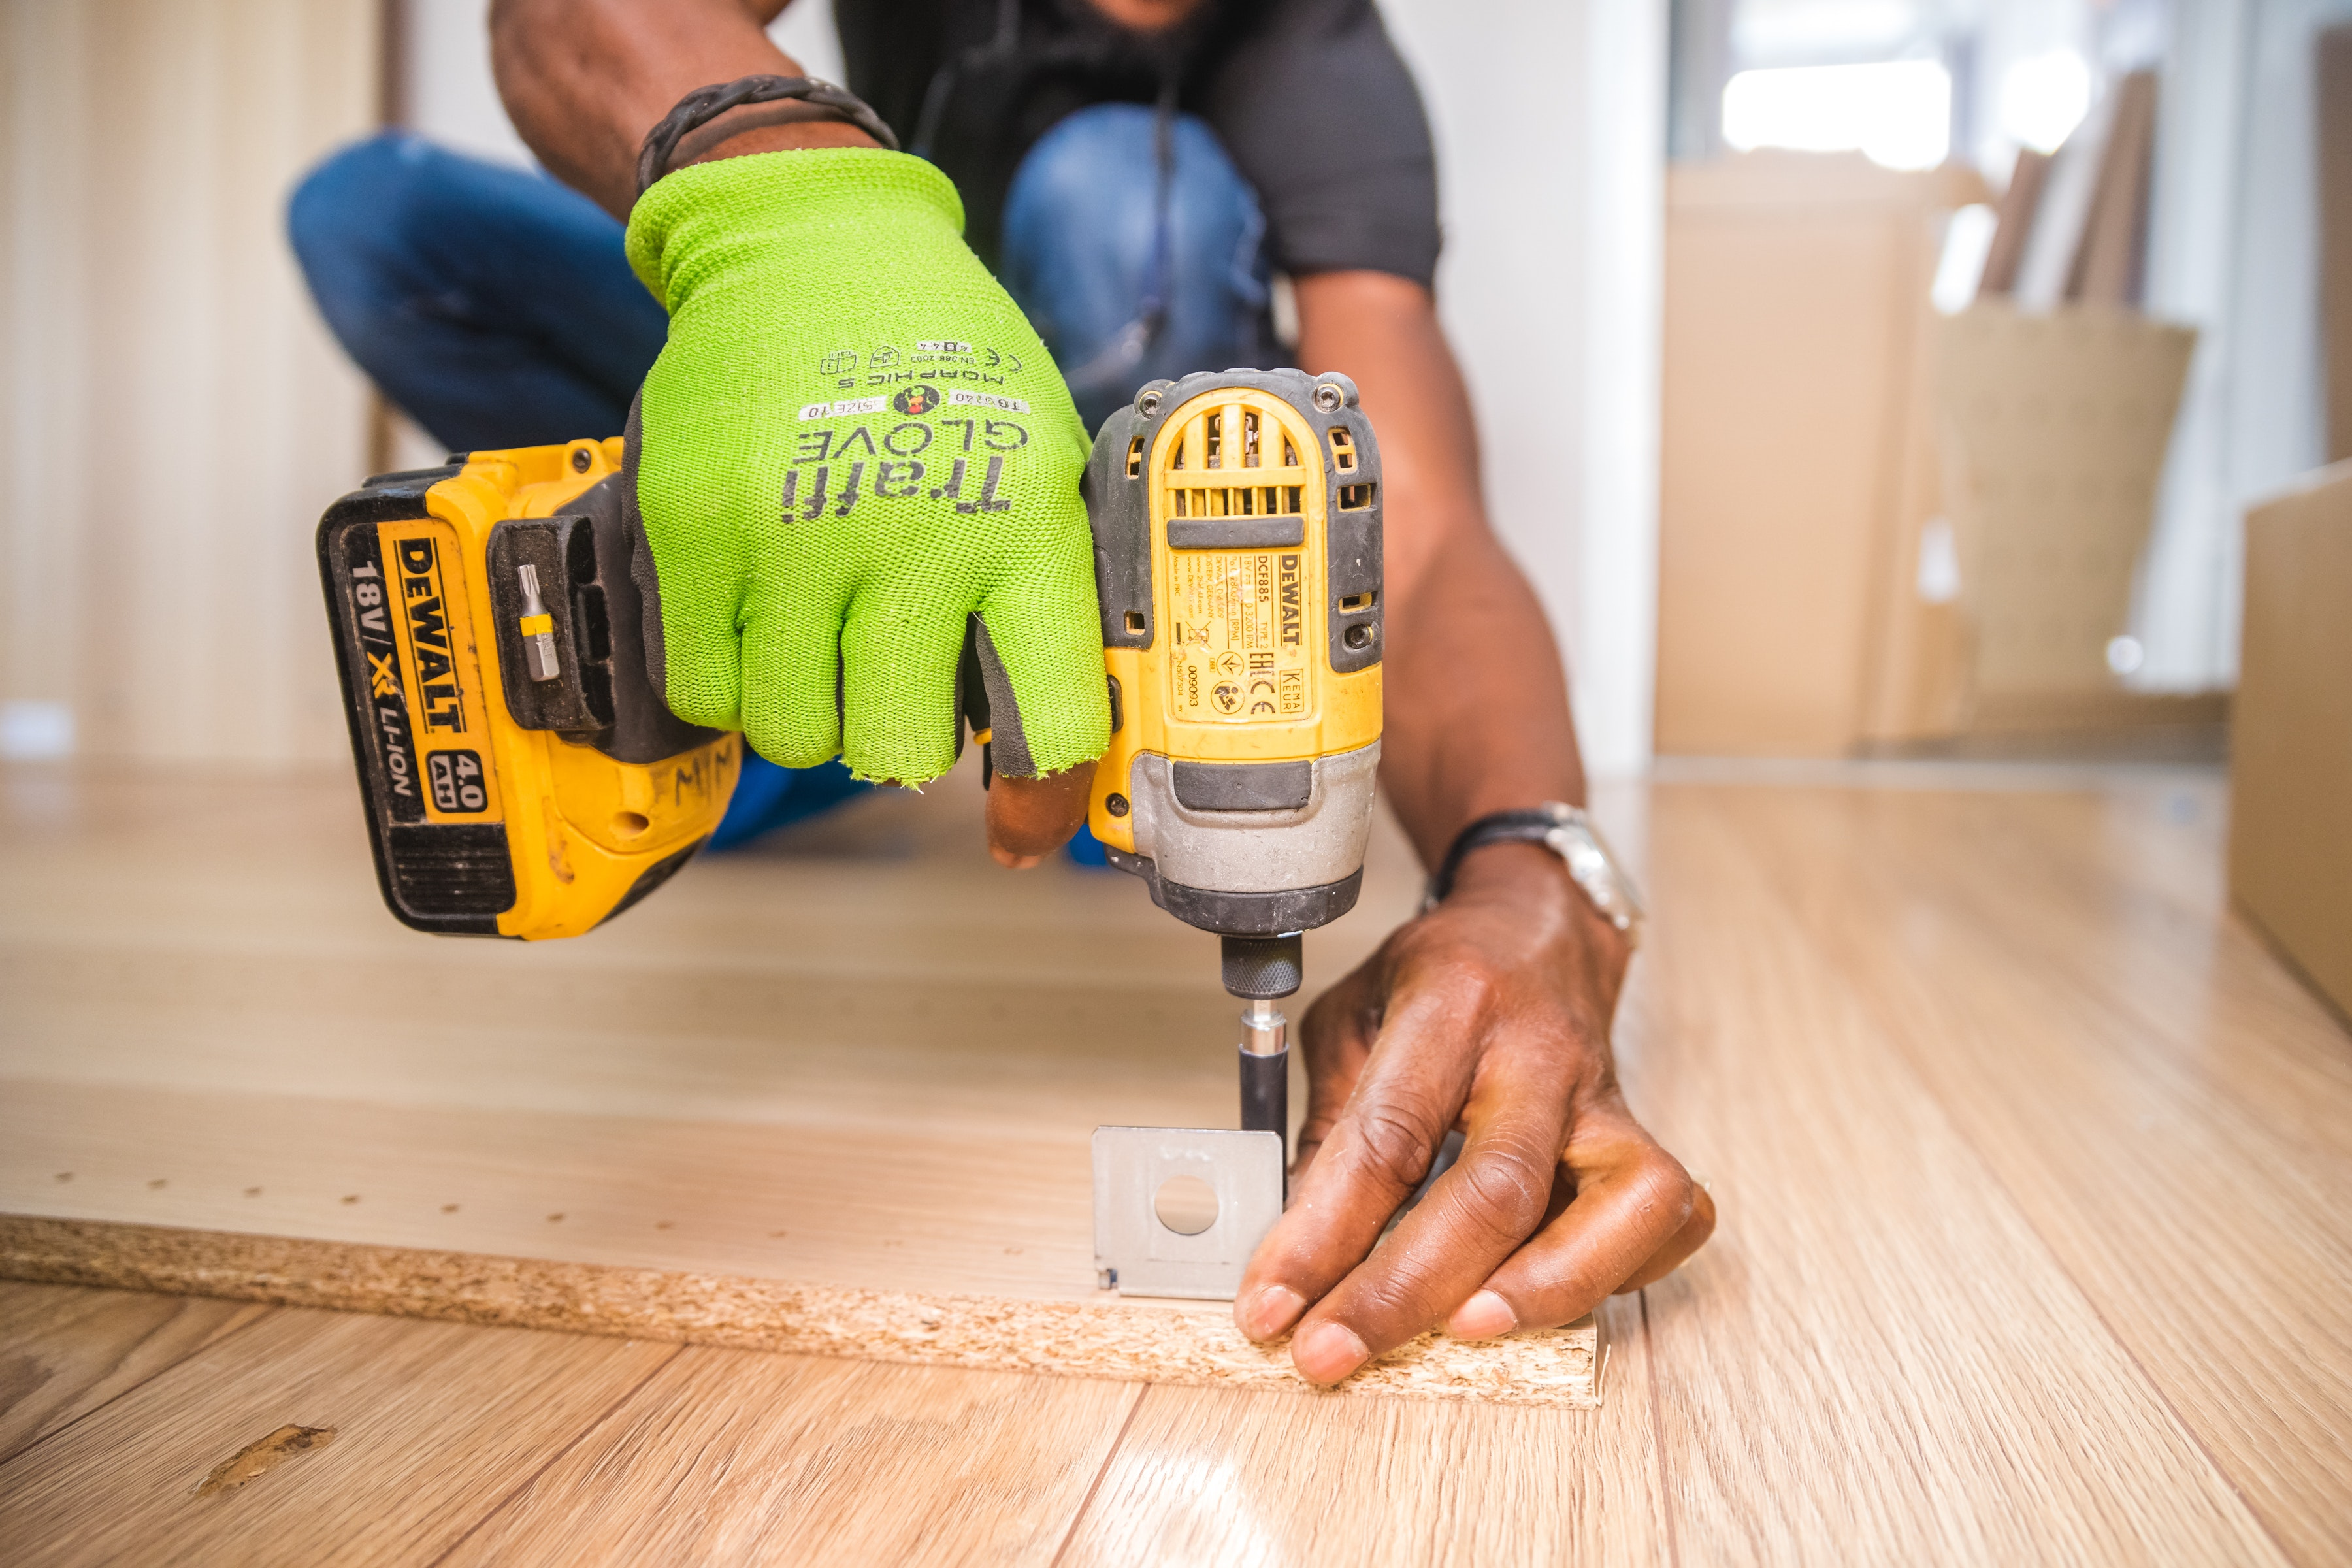 Handyman Services in Sooke and Victoria BC